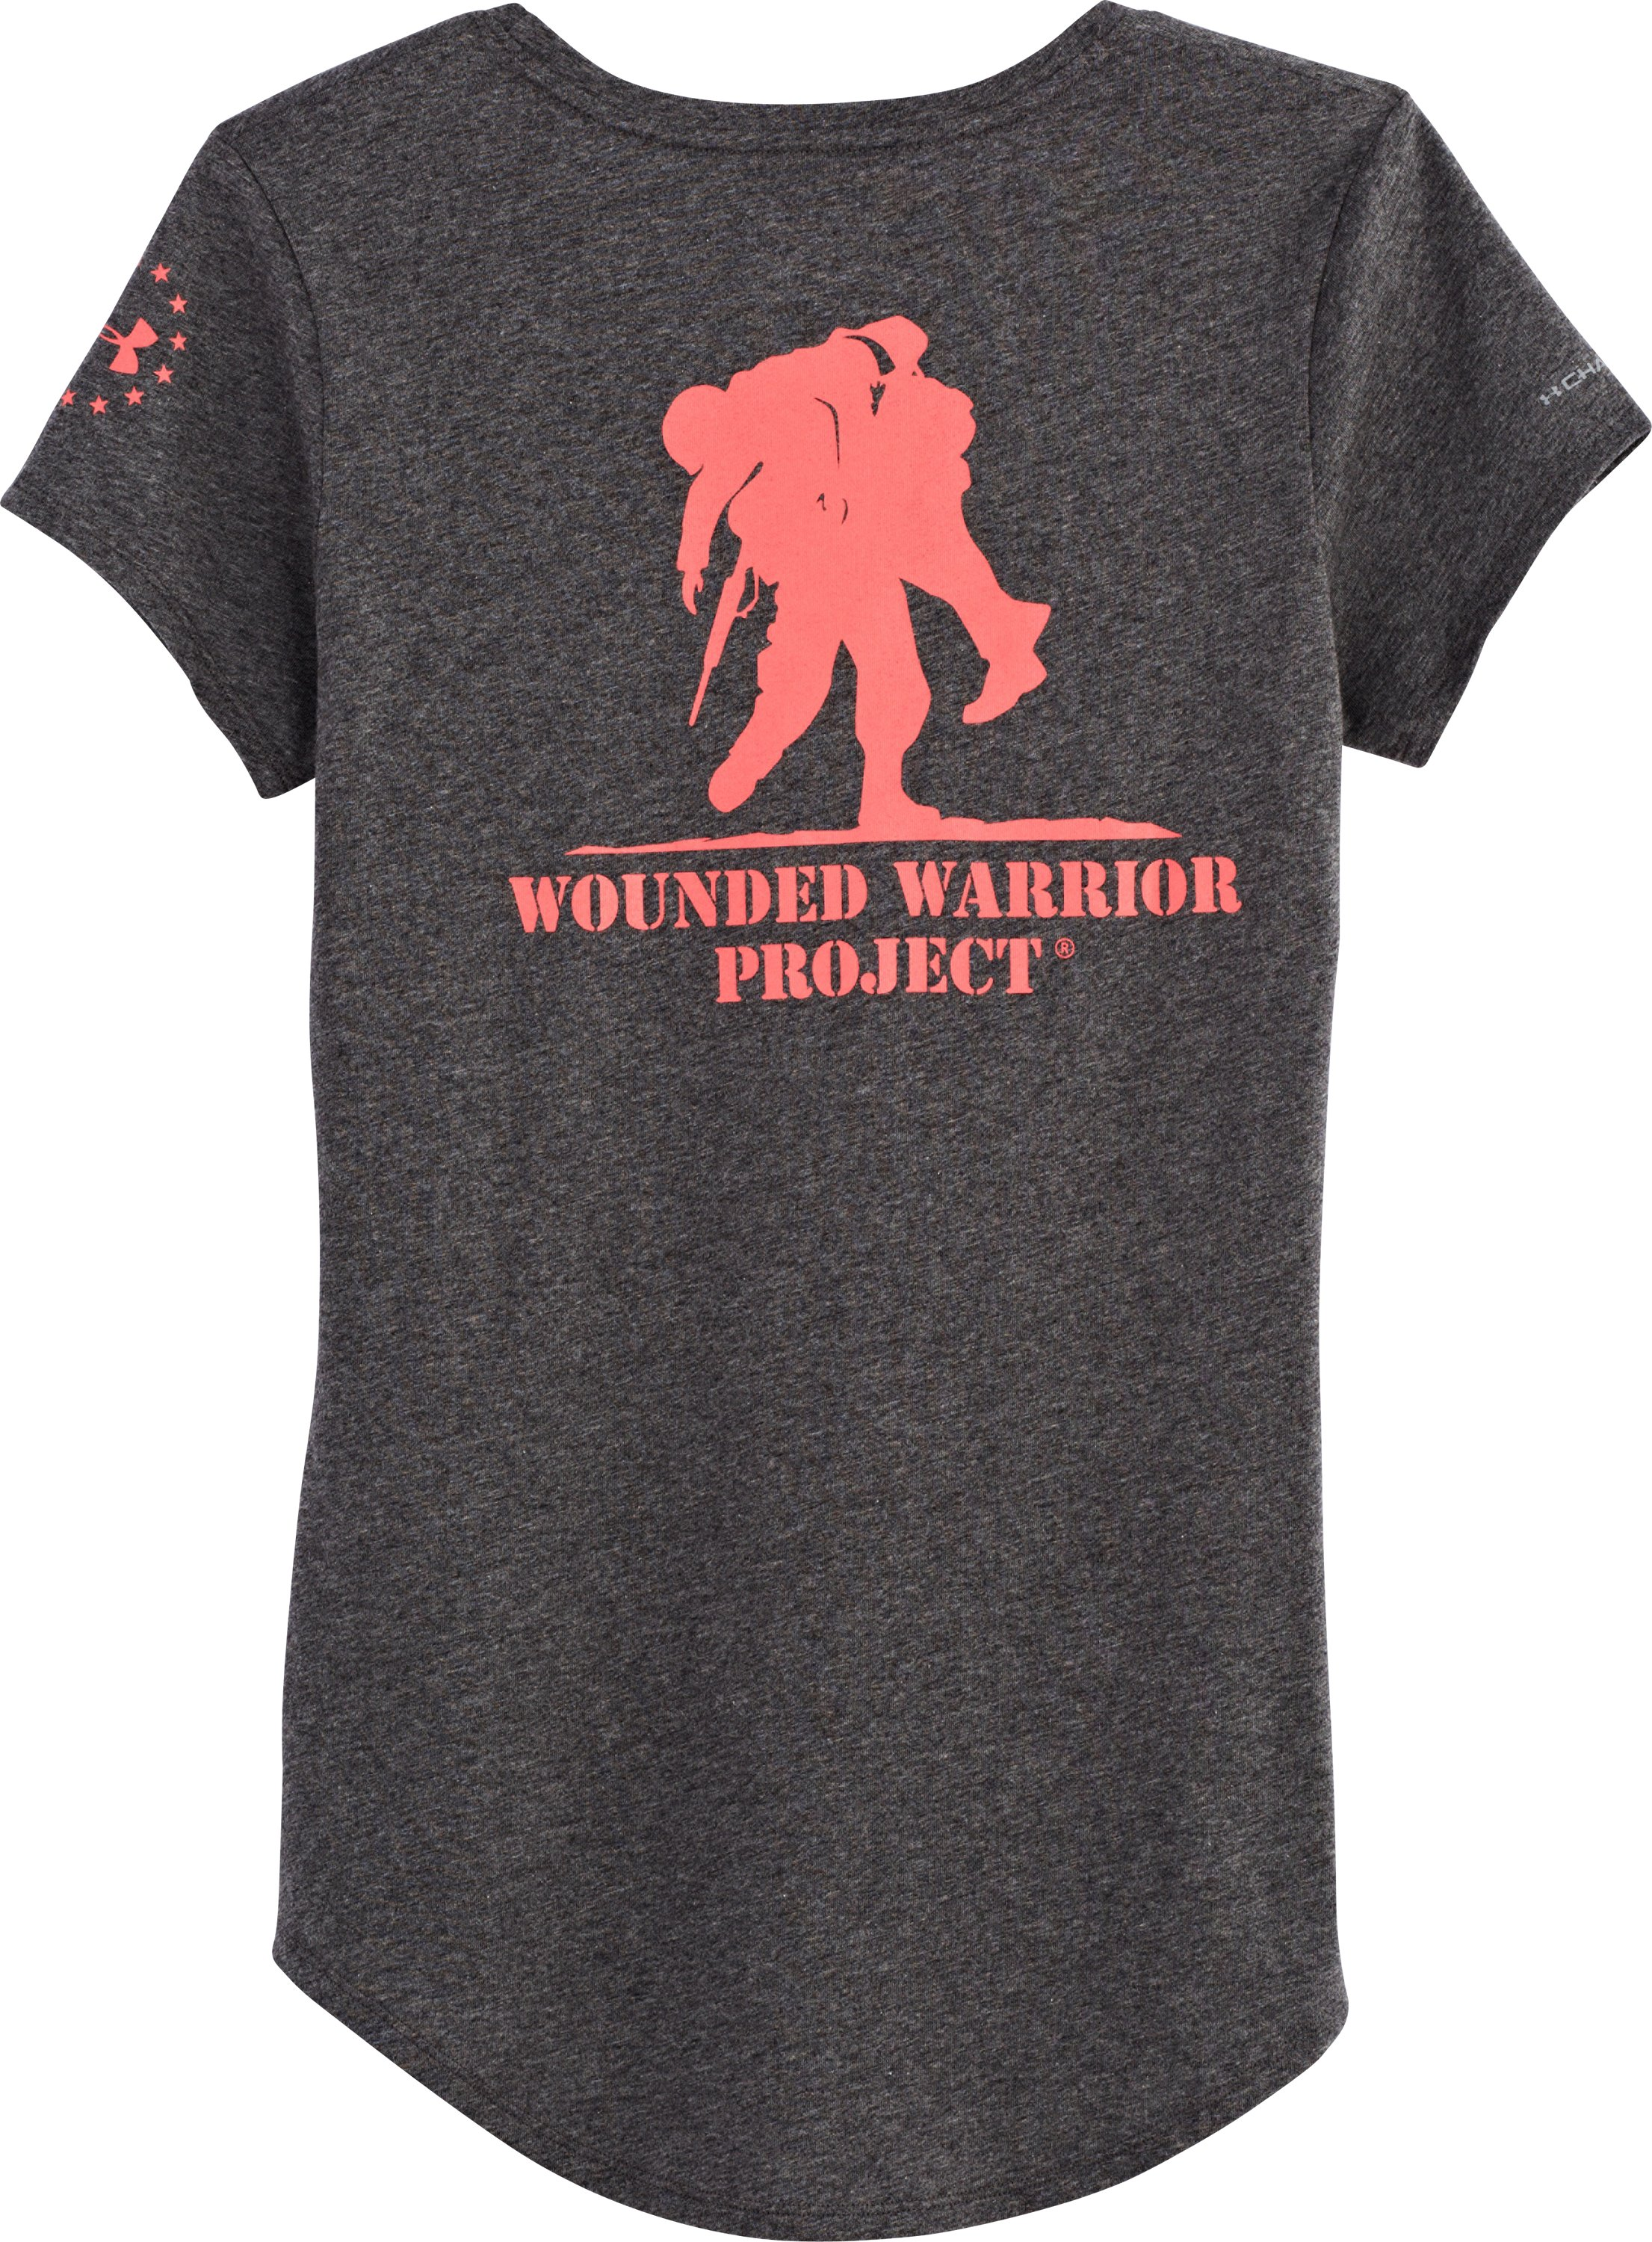 Women's Wounded Warrior Project Short Sleeve, Carbon Heather